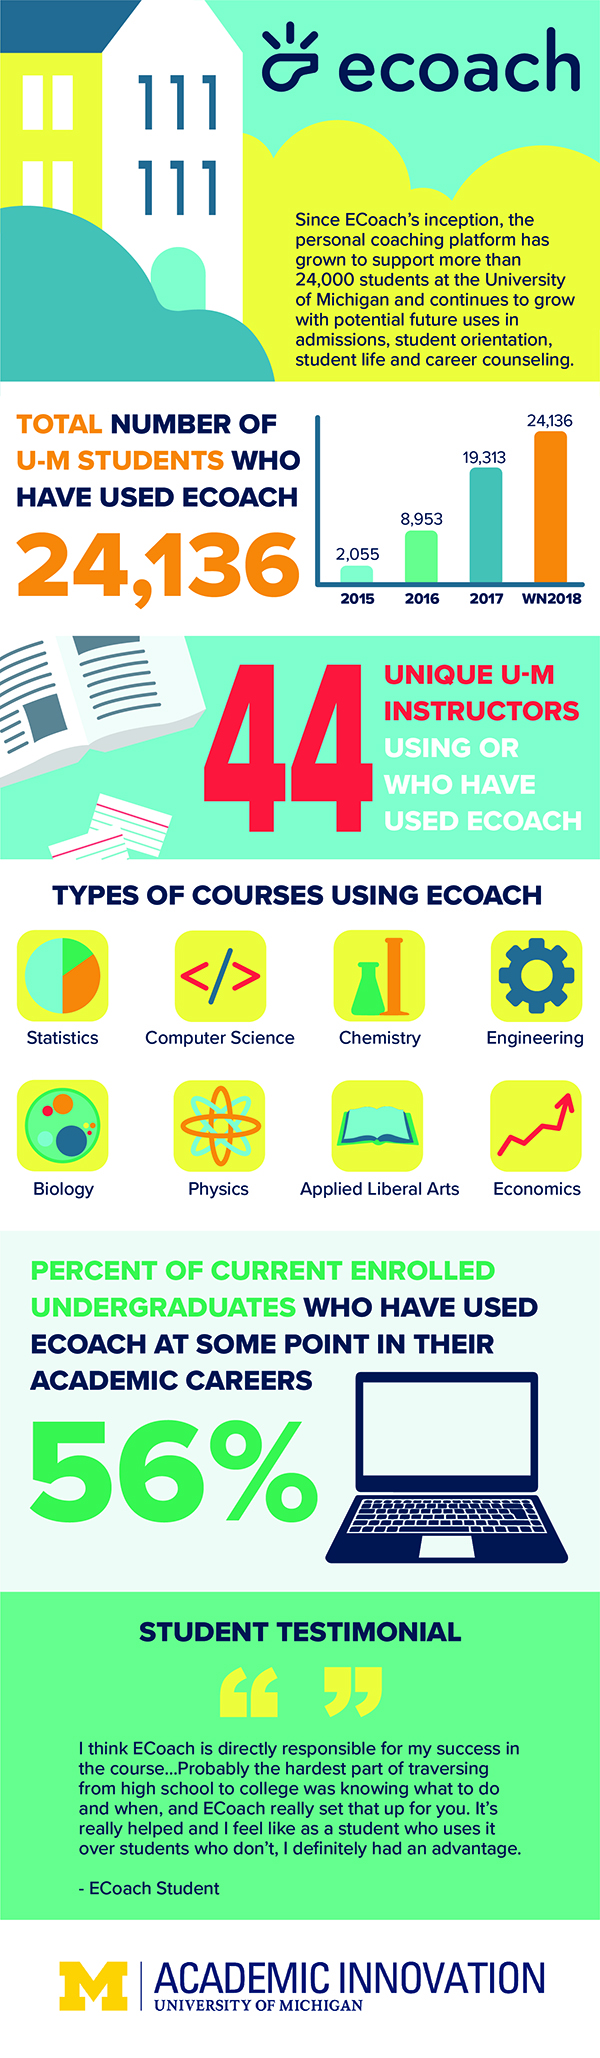 "Since ECoach's inception, the personal coaching platform has grown to support more than 24,000 students at the University of Michigan and continues to grow with potential future uses in admissions, student orientation, student life and career counseling. Total number of U-M students who have used ECoach: 24,136. A bar graph with four data points describing the number of U-M students using ECoach: 2,055 in 2015, 8,953 in 2016, 19,313 in 2017, 24,136 in Winter 2018. 44 unique U-M instructors are using or have used ECoach. Types of courses using ECoach: Statistics, Computer Science, Chemistry, Engineering, Biology, Physics, Applied Liberal Arts, Economics. Percent of current enrolled undergraduates who have used ECoach at some point in their academic careers is 56%.Student testimonial. ""I think ECoach is directly responsible for my success in the course…Probably the hardest part of traversing from high school to college was knowing what to do and when, and ECoach really set that up for you. It's really helped and I feel like as a student who uses it over students who don't, I definitely had an advantage."" - ECoach Student. Academic Innovation logo."